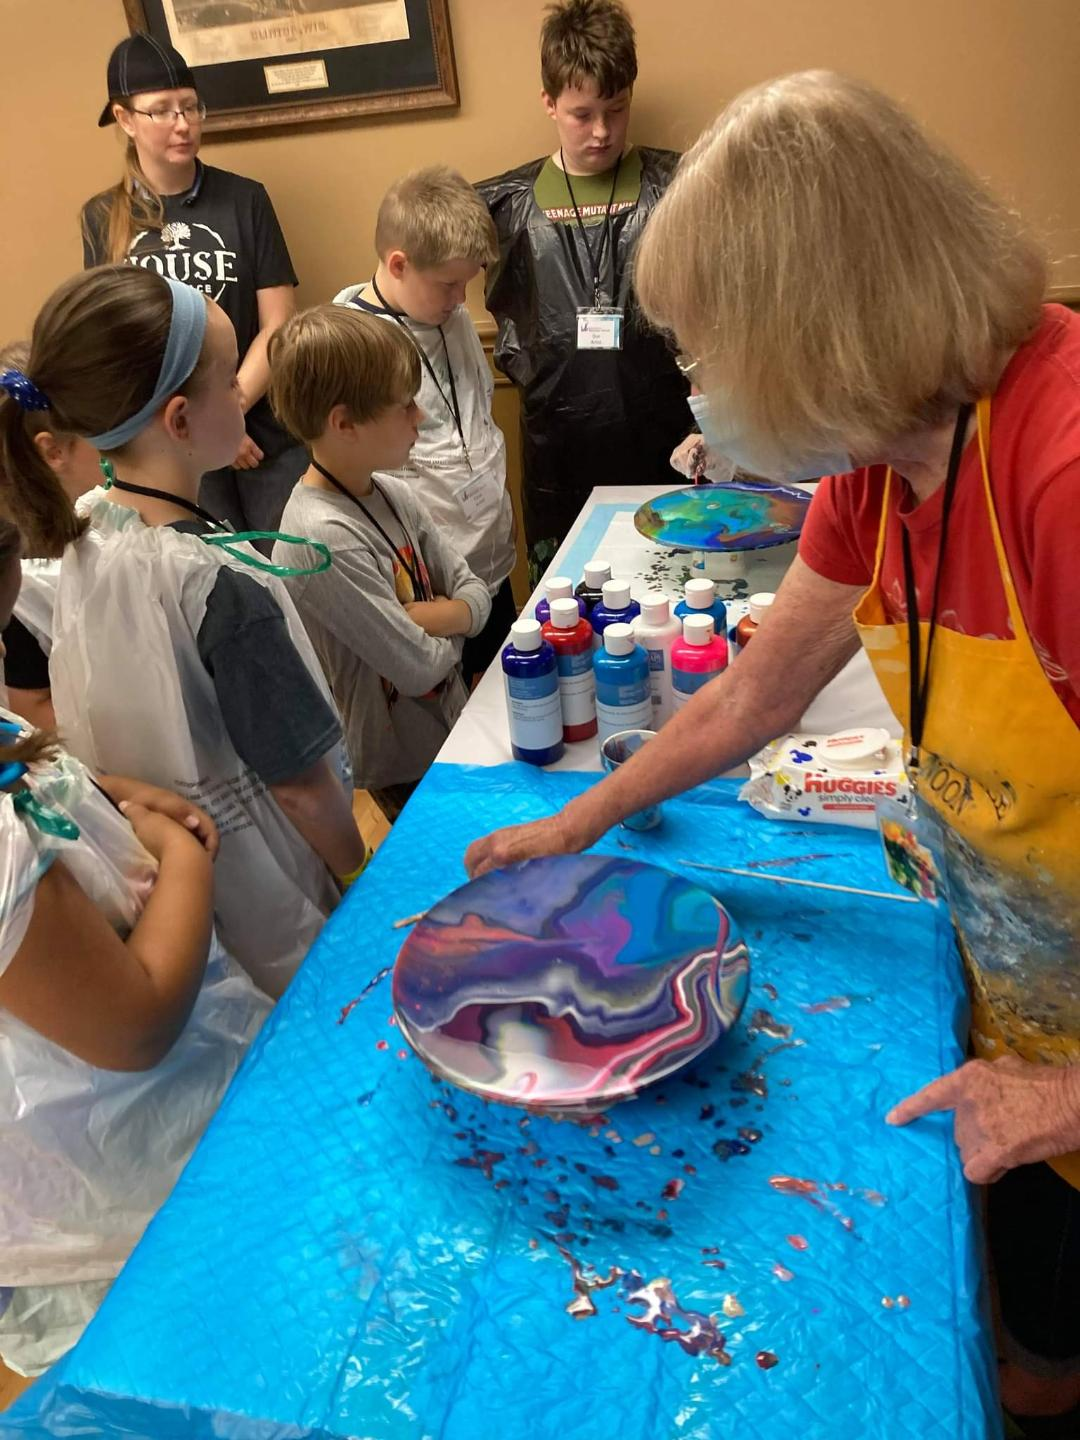 Nancy McKinnon demonstrated how to pour acrylic paint.